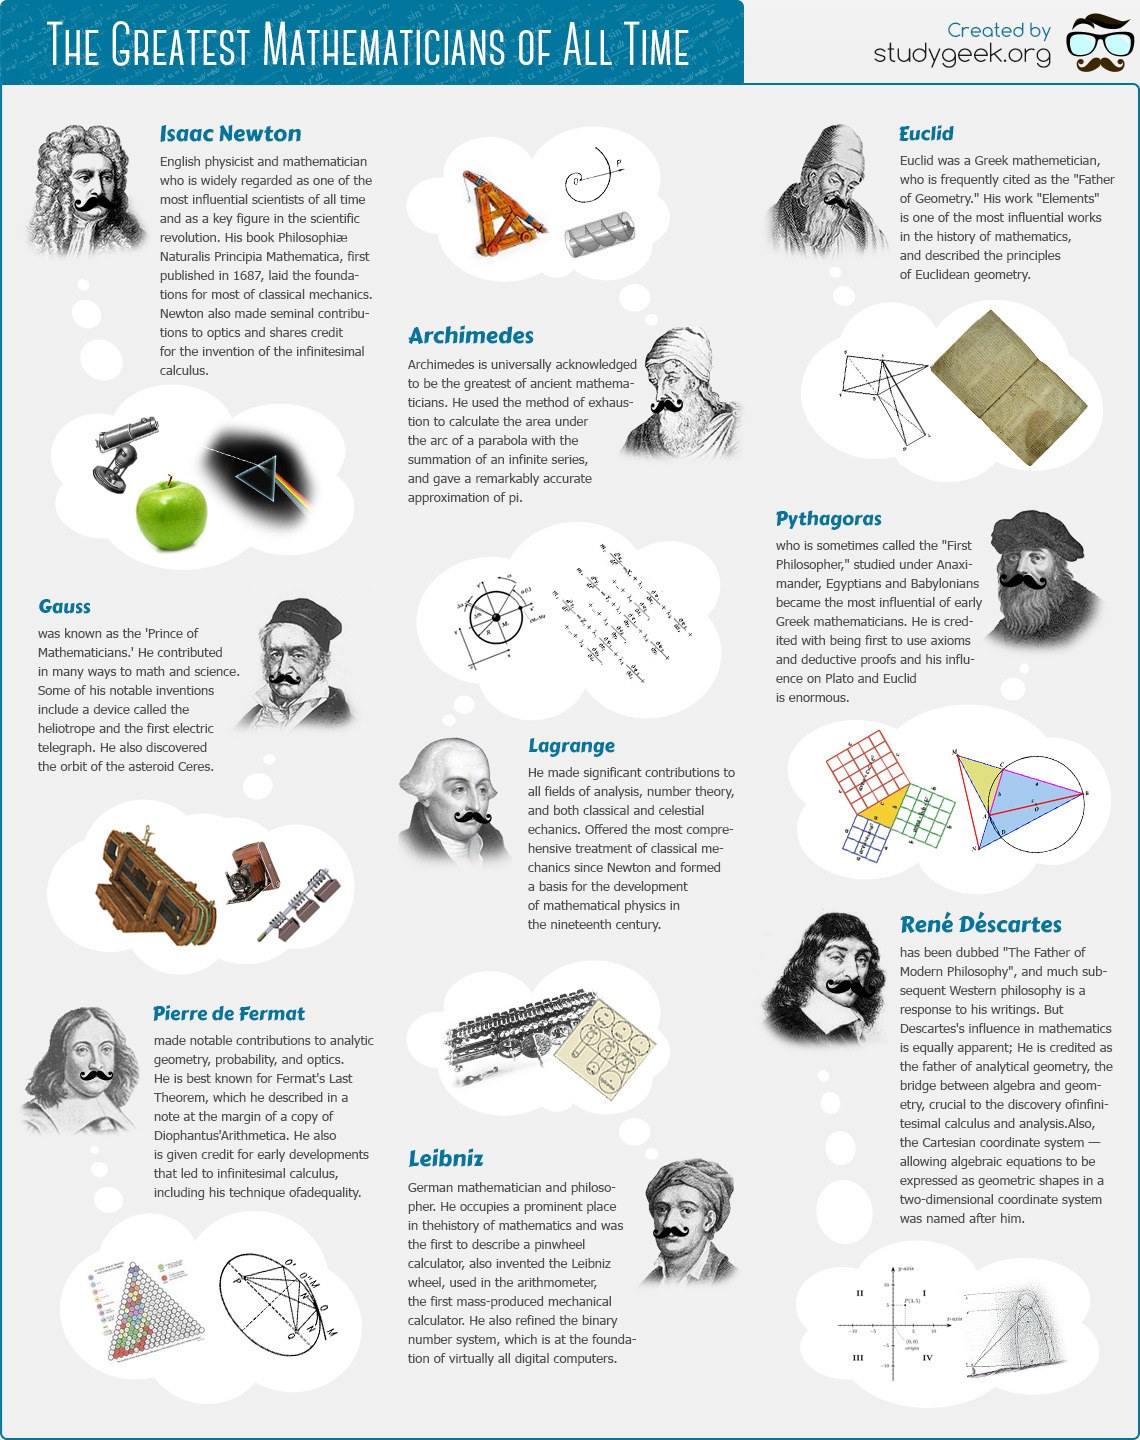 essay on famous mathematicians The following is a list of famous mathematicians no doubt there have been numerous men and women that made significant contributions and discoveries in the field of mathematics however, the following people have become well known due to the impact of their works.